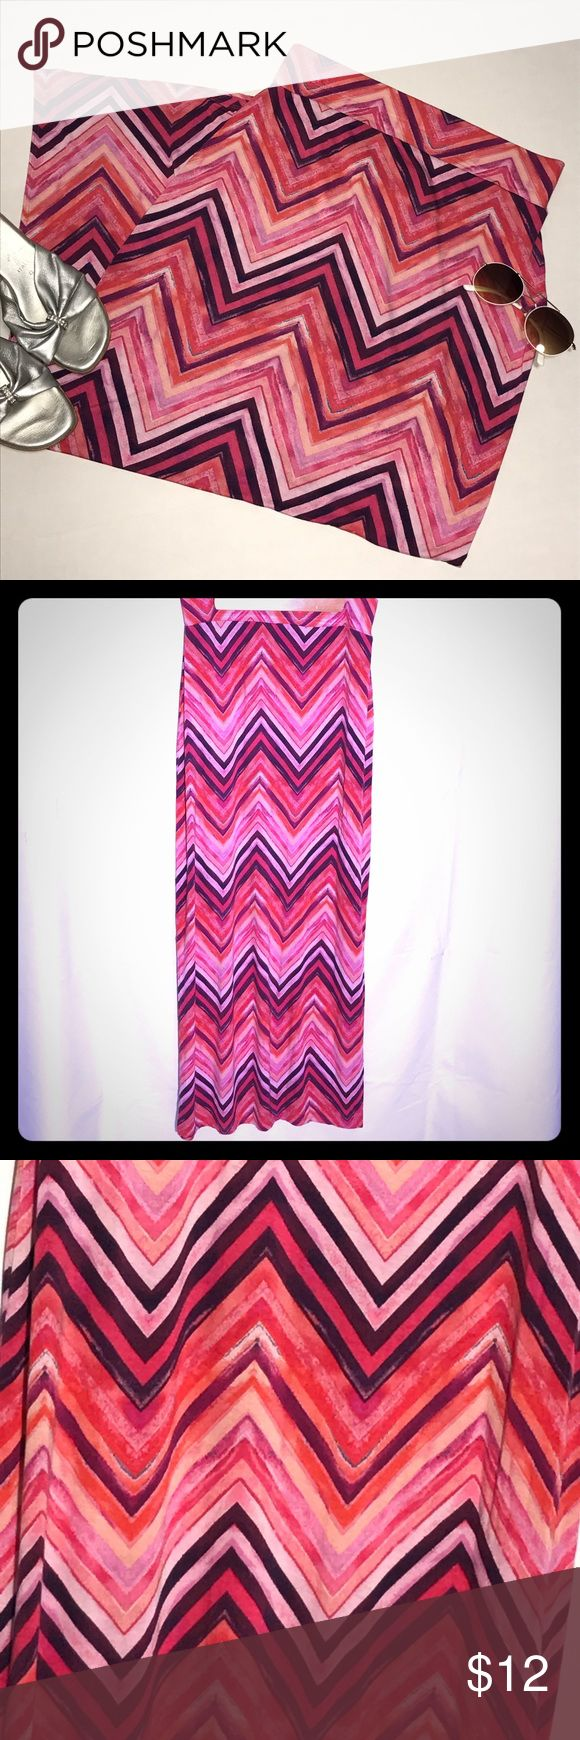 "a.n.a. Chevron Maxi Skirt Long Chevron Maxi Skirt with 16"" side slits. Nice wide waist and for comfort. See image above for other measurements. 95% Rayon, 5% Spandex a.n.a Skirts Maxi"